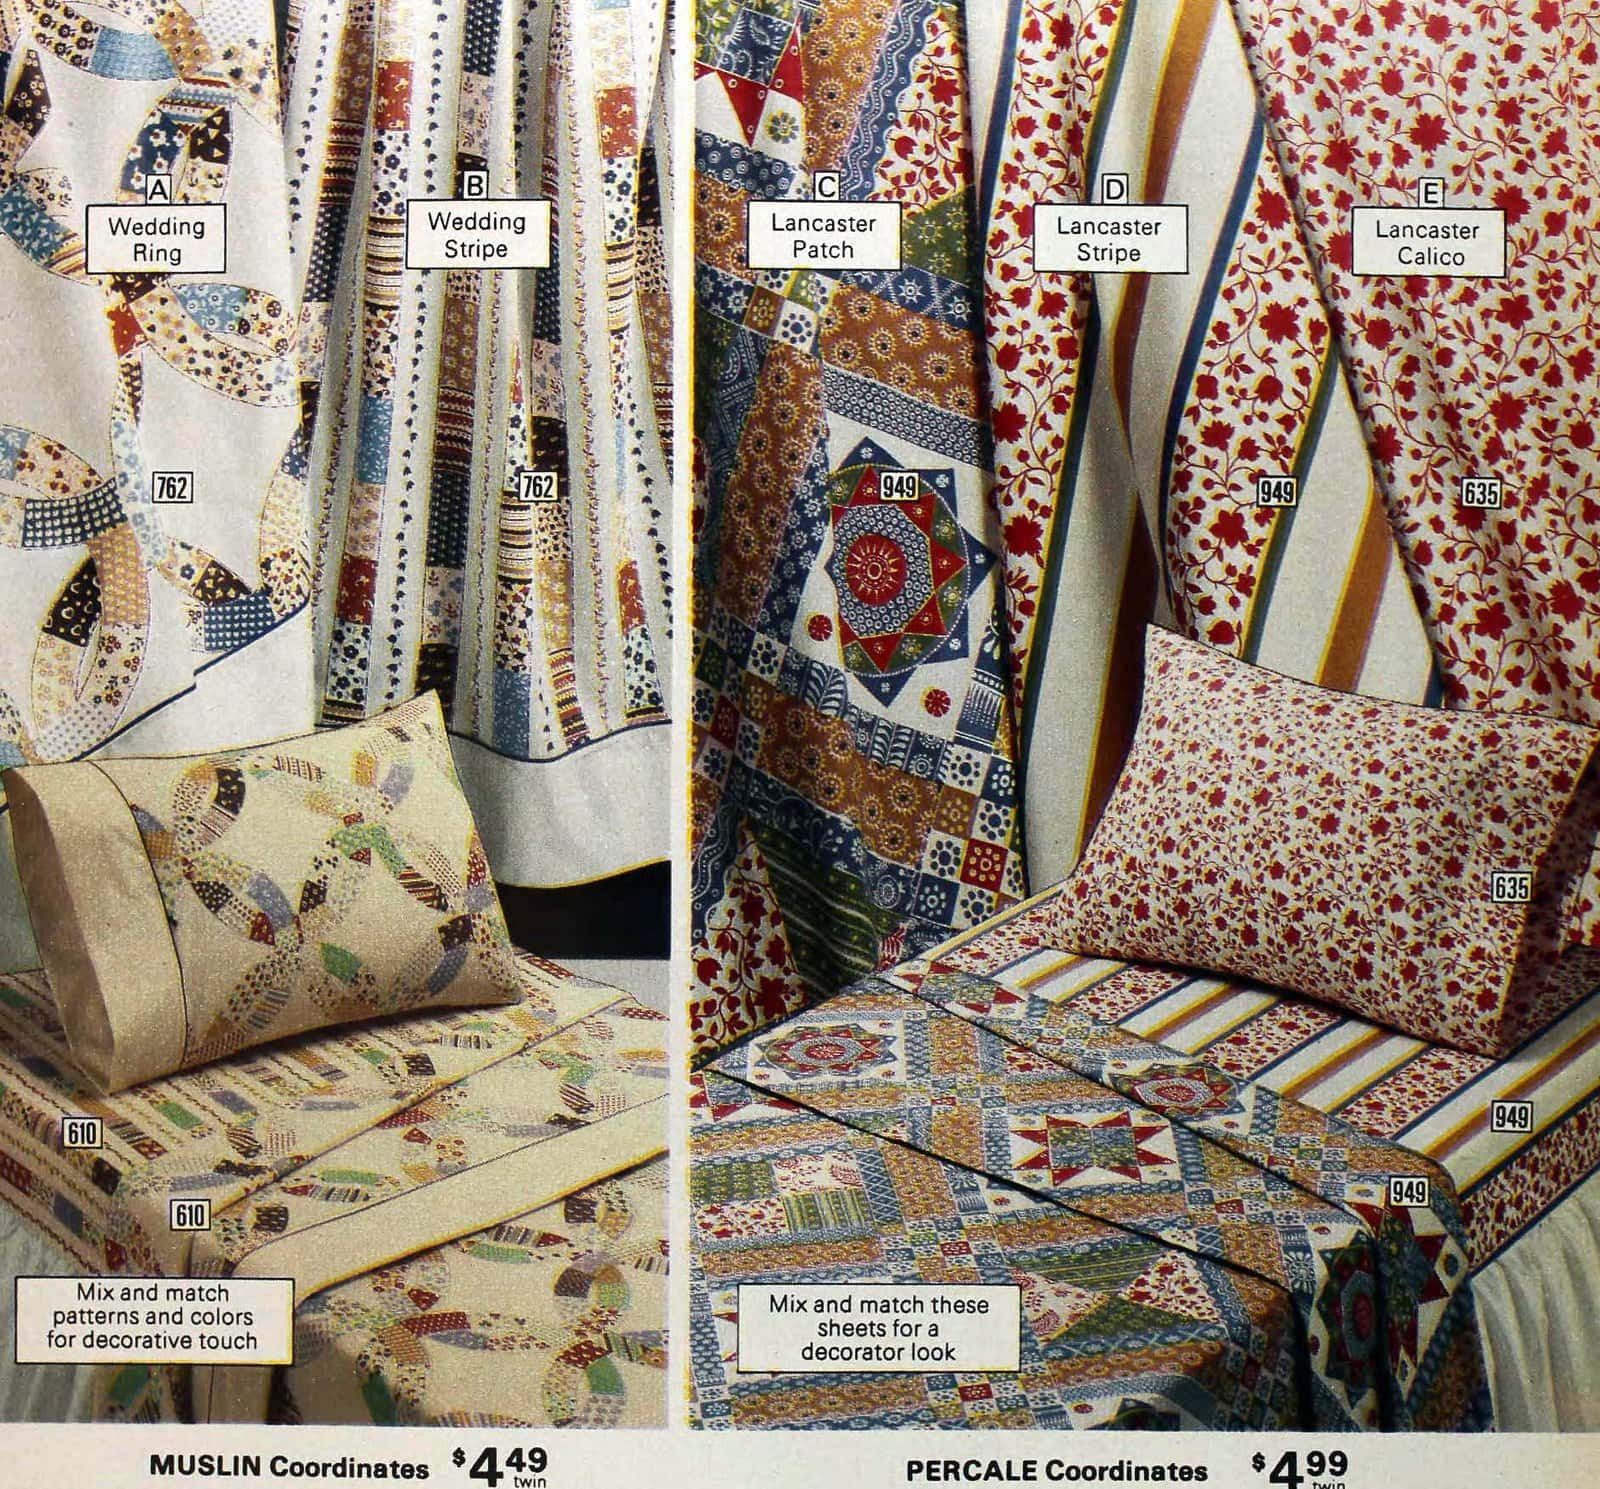 Traditional Lancaster and wedding ring patterned sheets from the 1970s